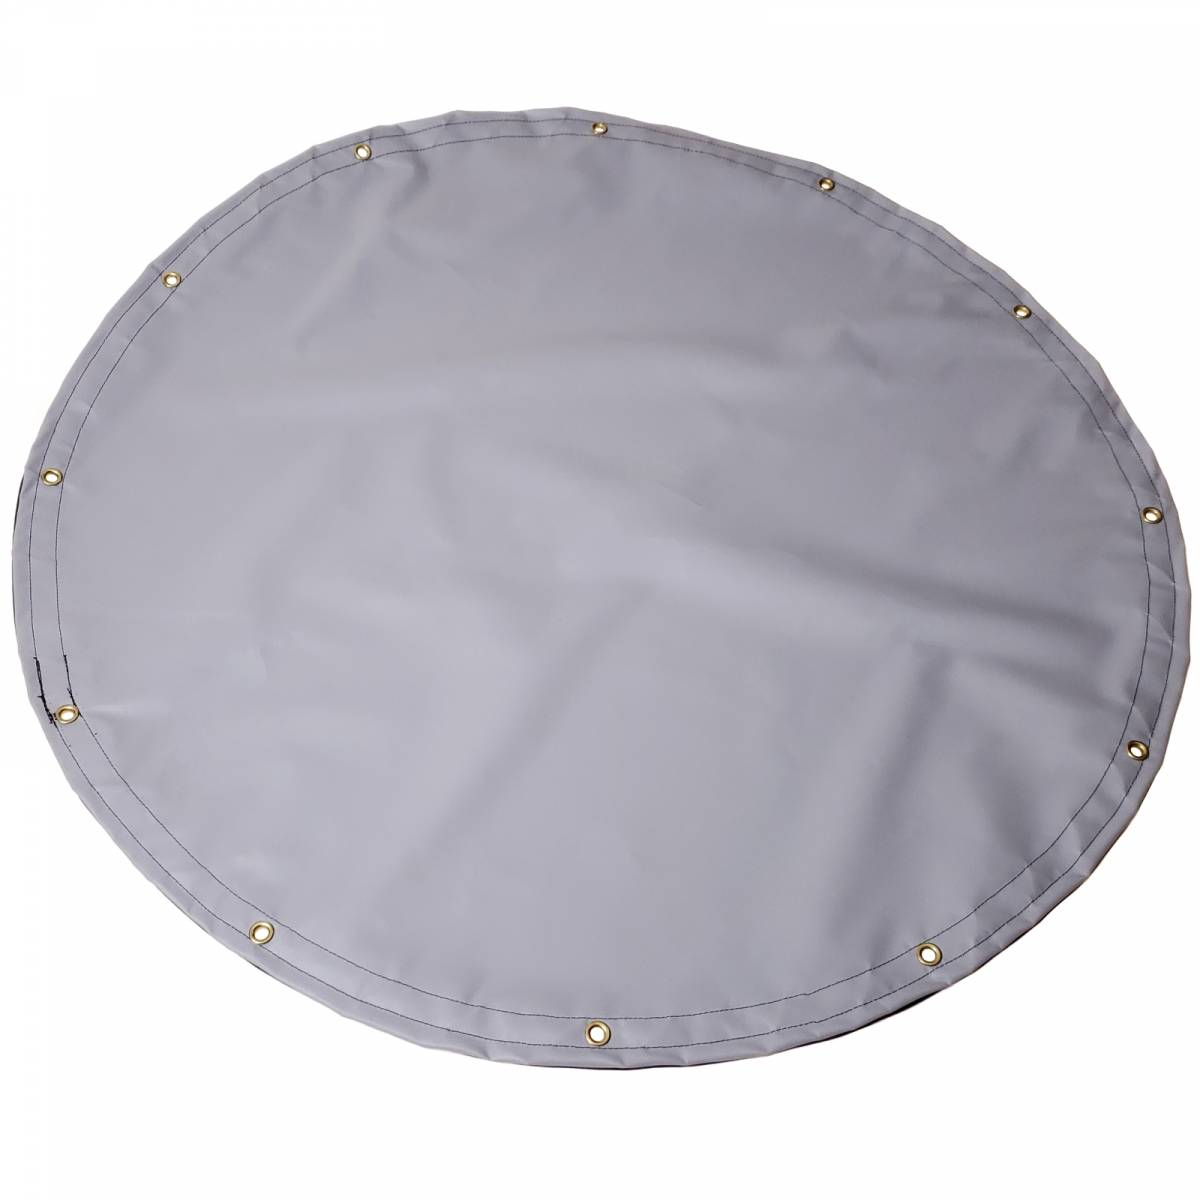 Custom Round Shaped Tarp Cover 22oz Solid Vinyl Coated